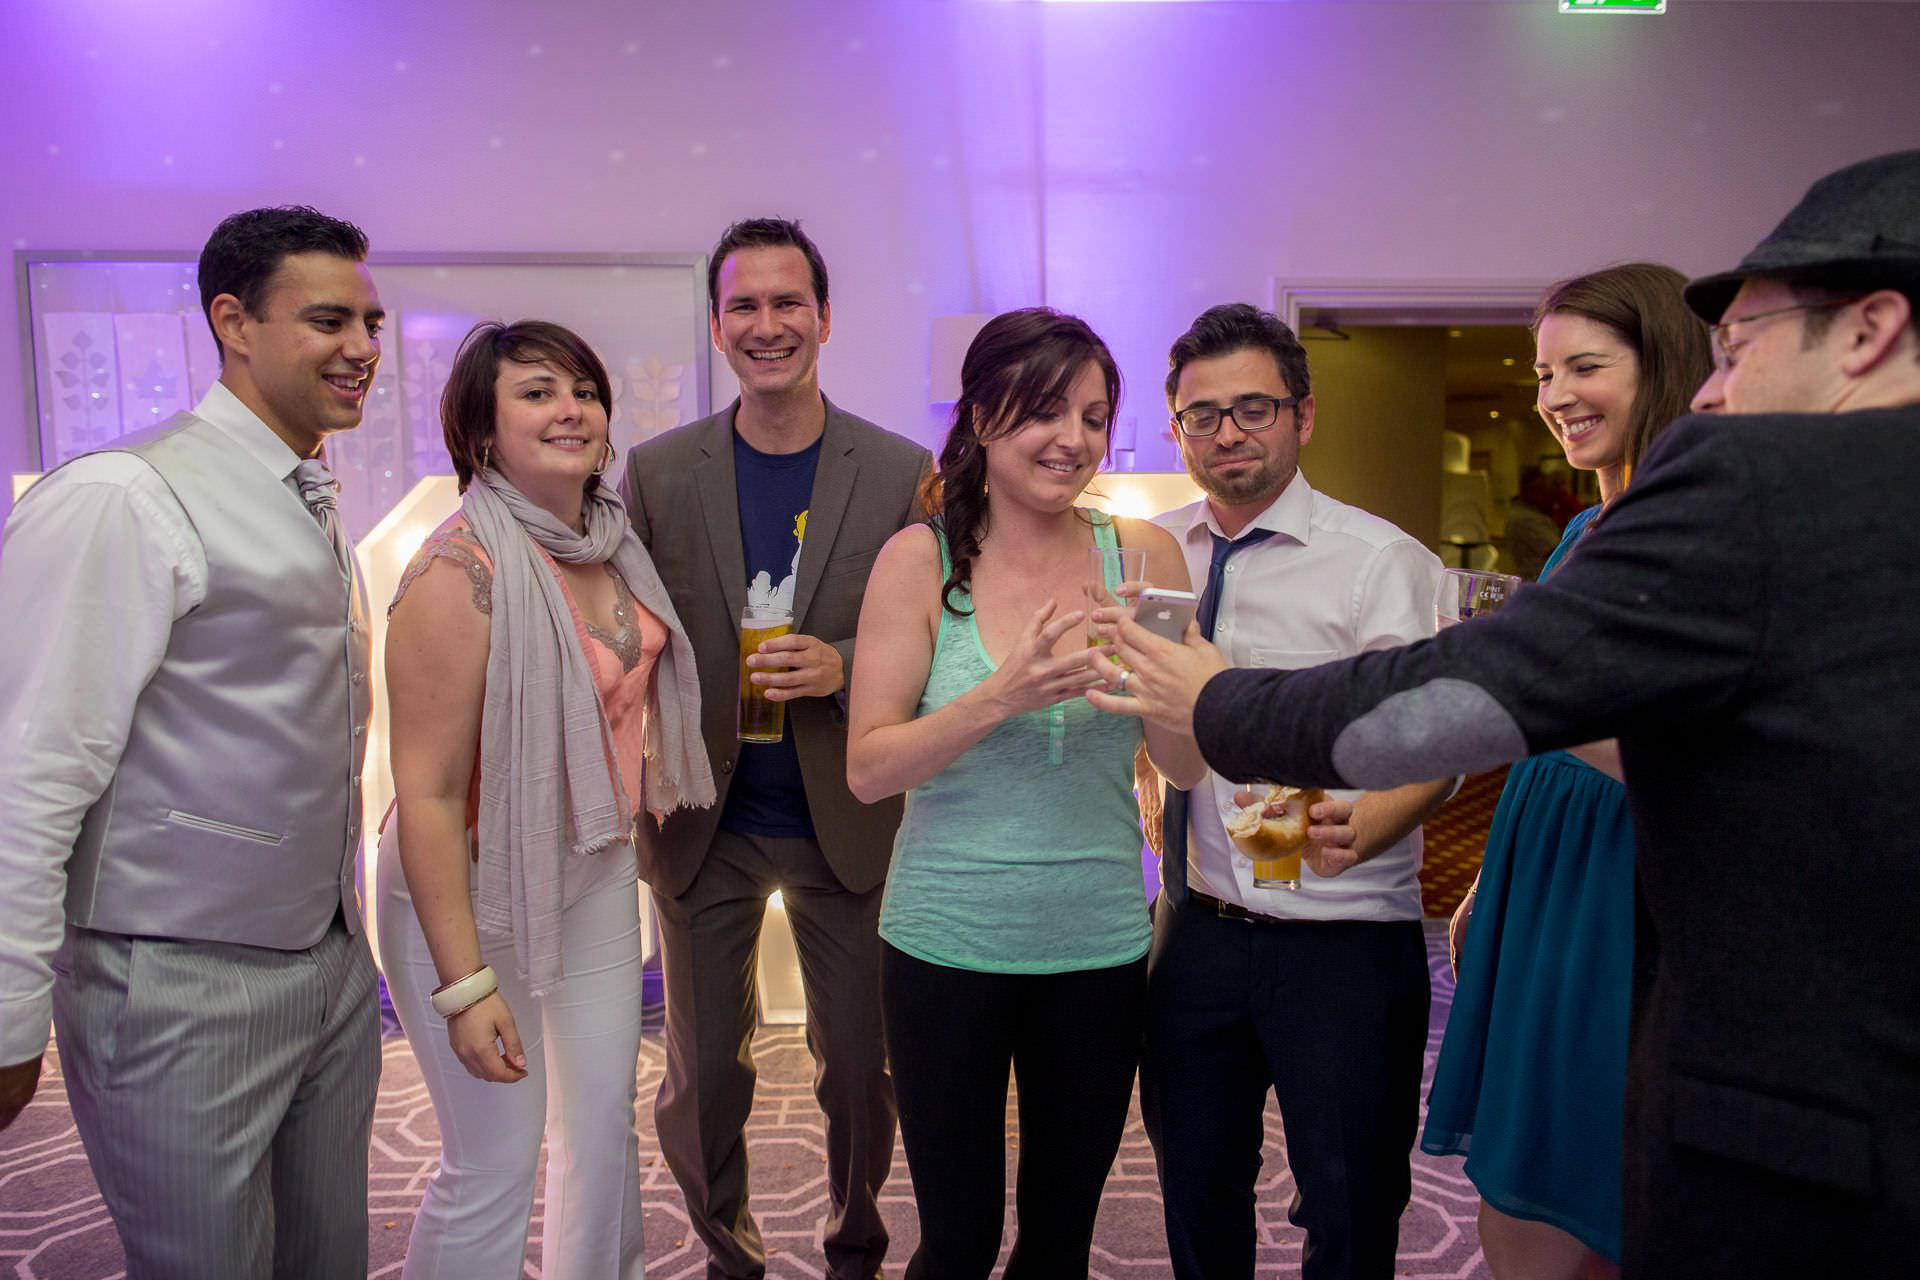 Wotton House wedding guests having a drink